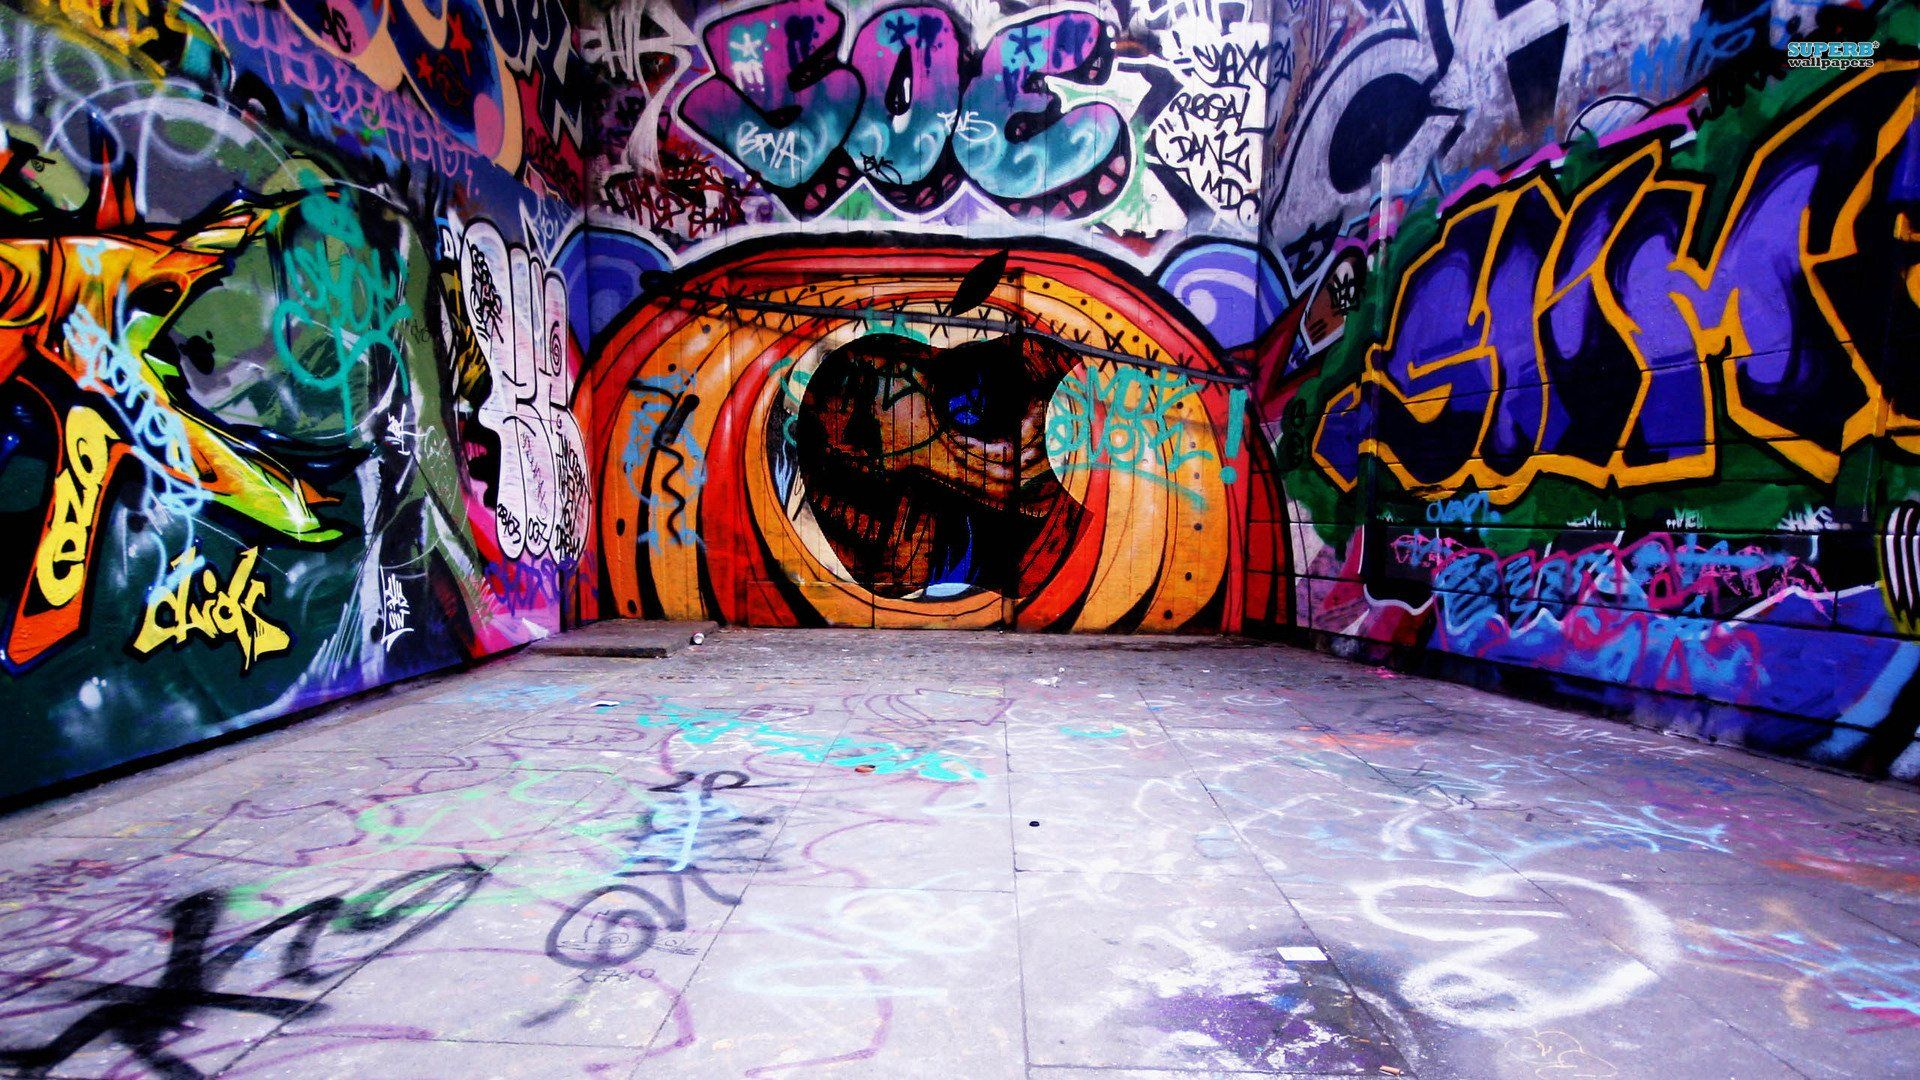 Cool Background Graffiti Hip Hop Wallpaper Desktop HD x